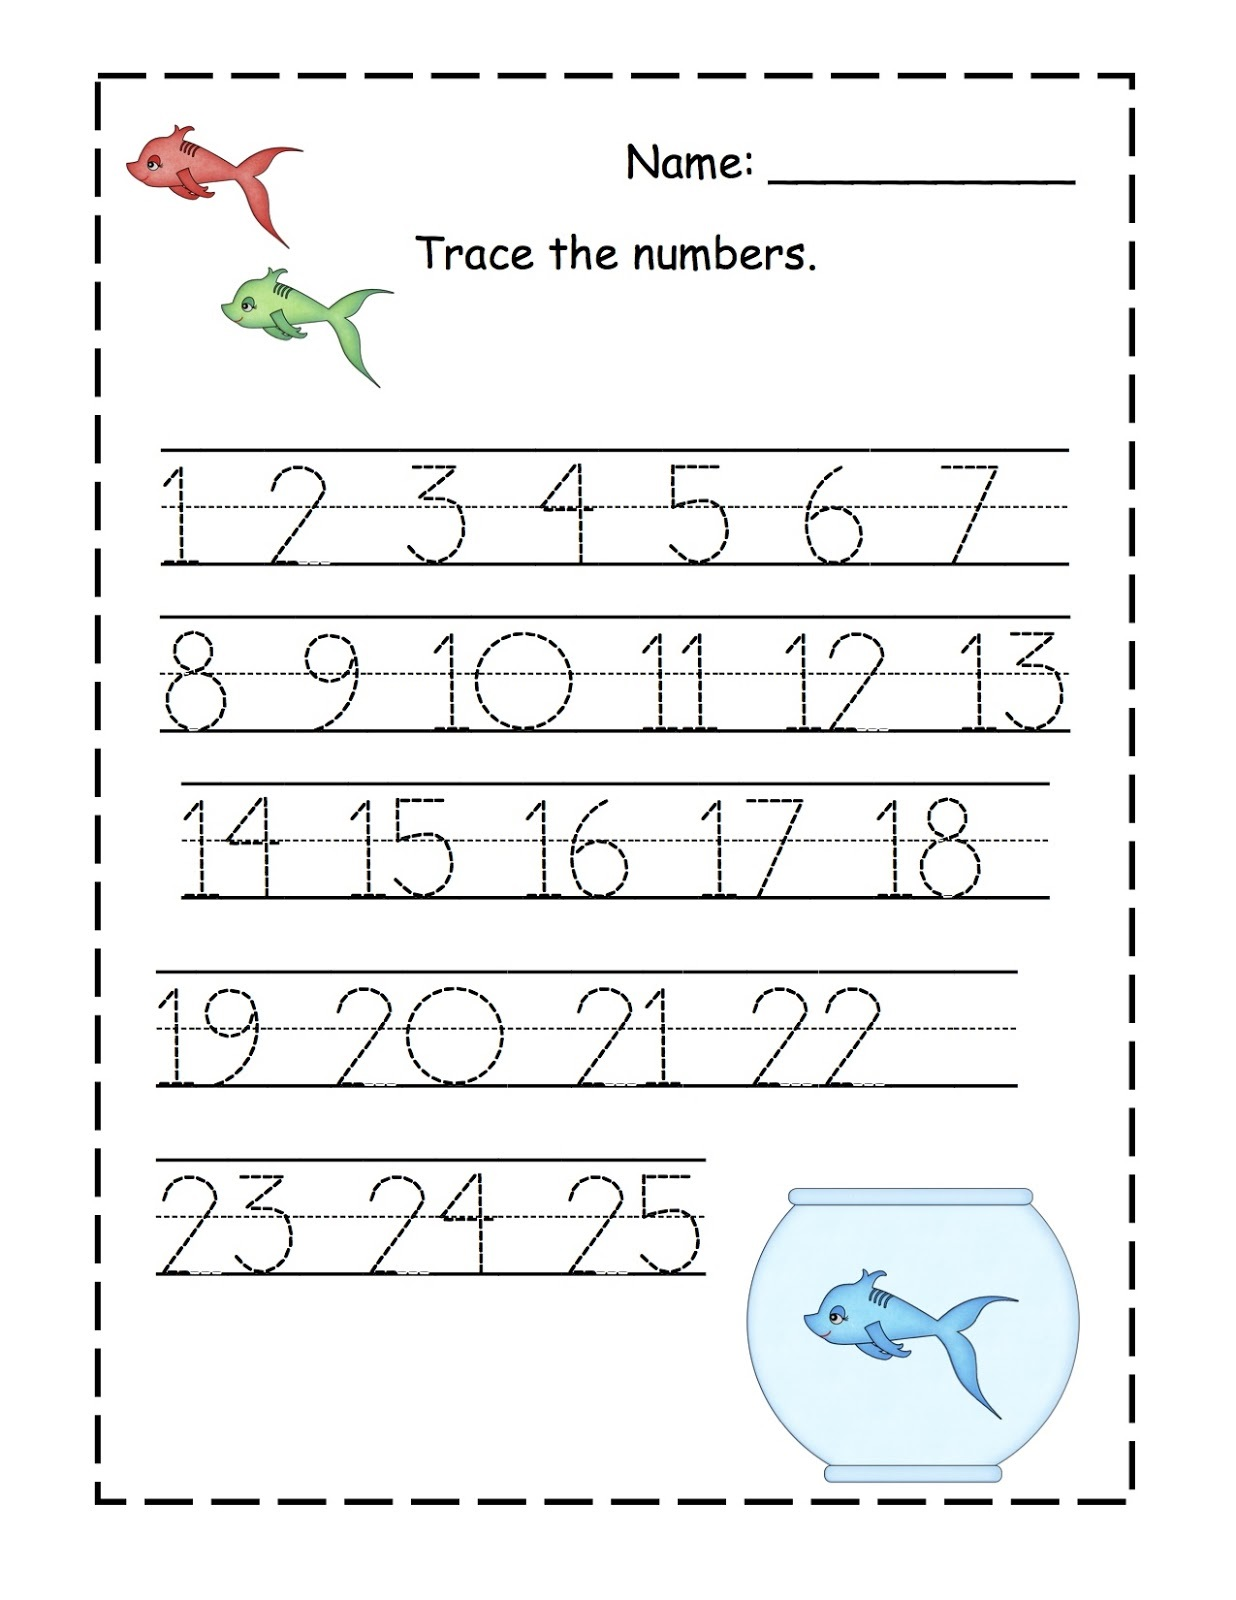 Printables Number Tracing Worksheets 1-20 tracing numbers worksheets 1 20 scalien number plustheapp